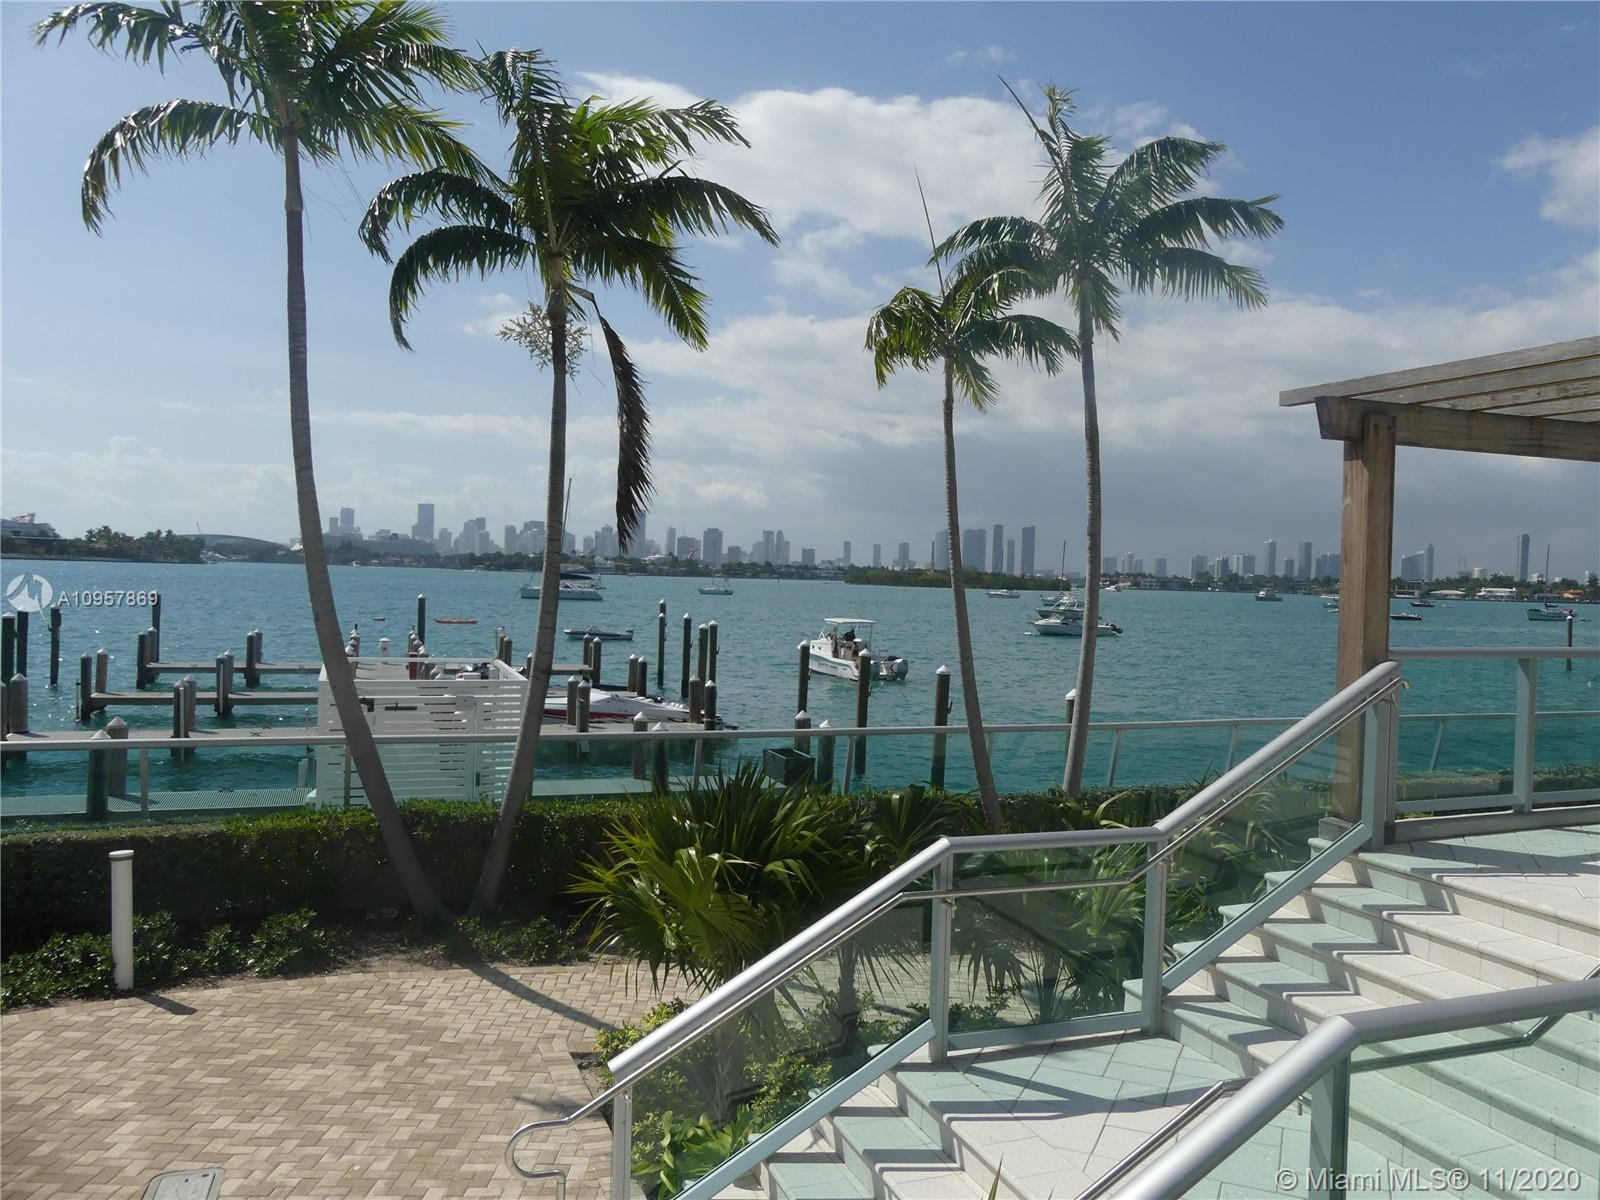 Flamingo South Beach #1560S - 1500 Bay Rd #1560S, Miami Beach, FL 33139